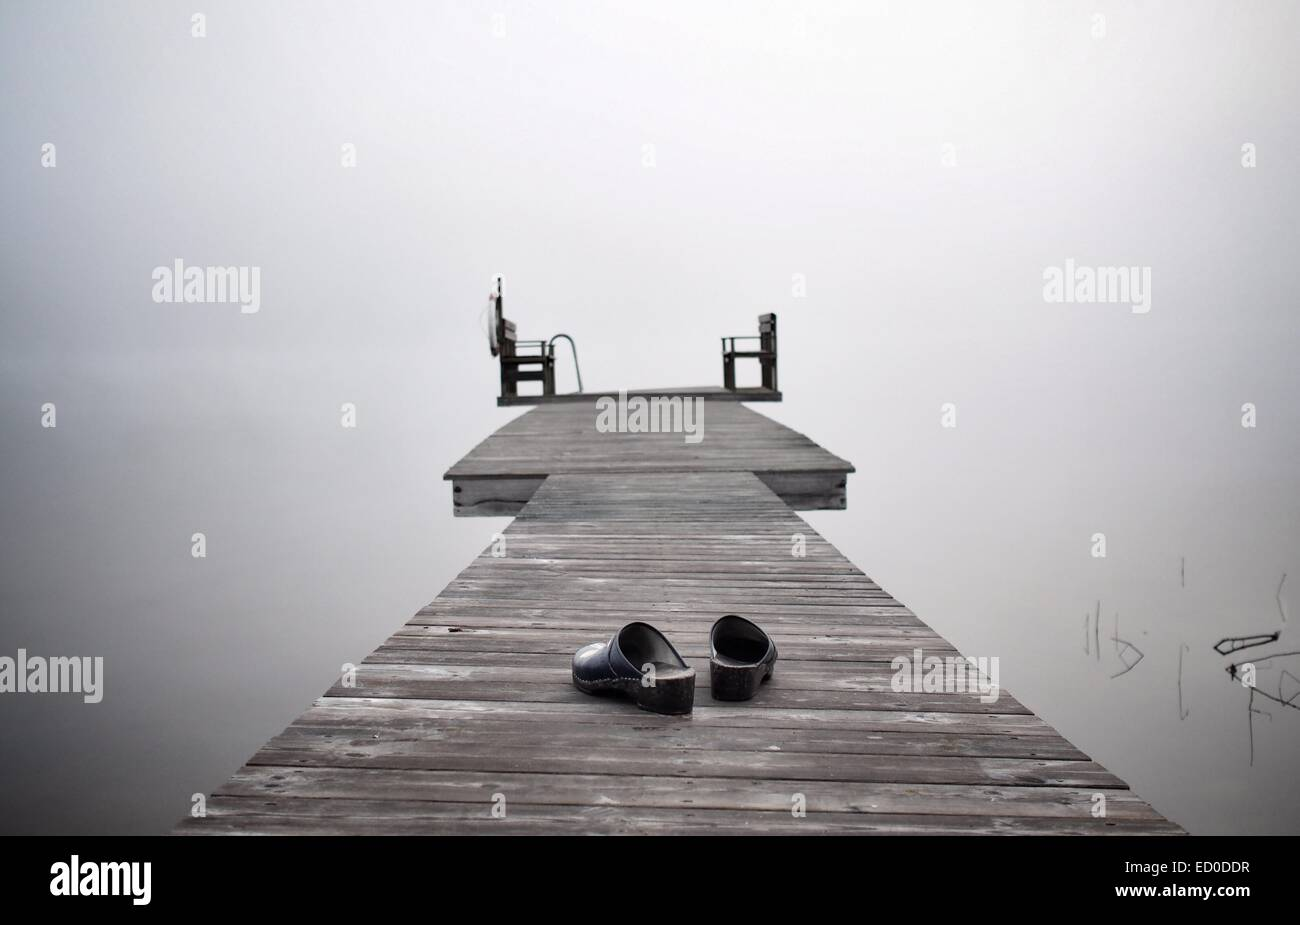 Sweden, Dalarna, View of shoes on wooden pier - Stock Image